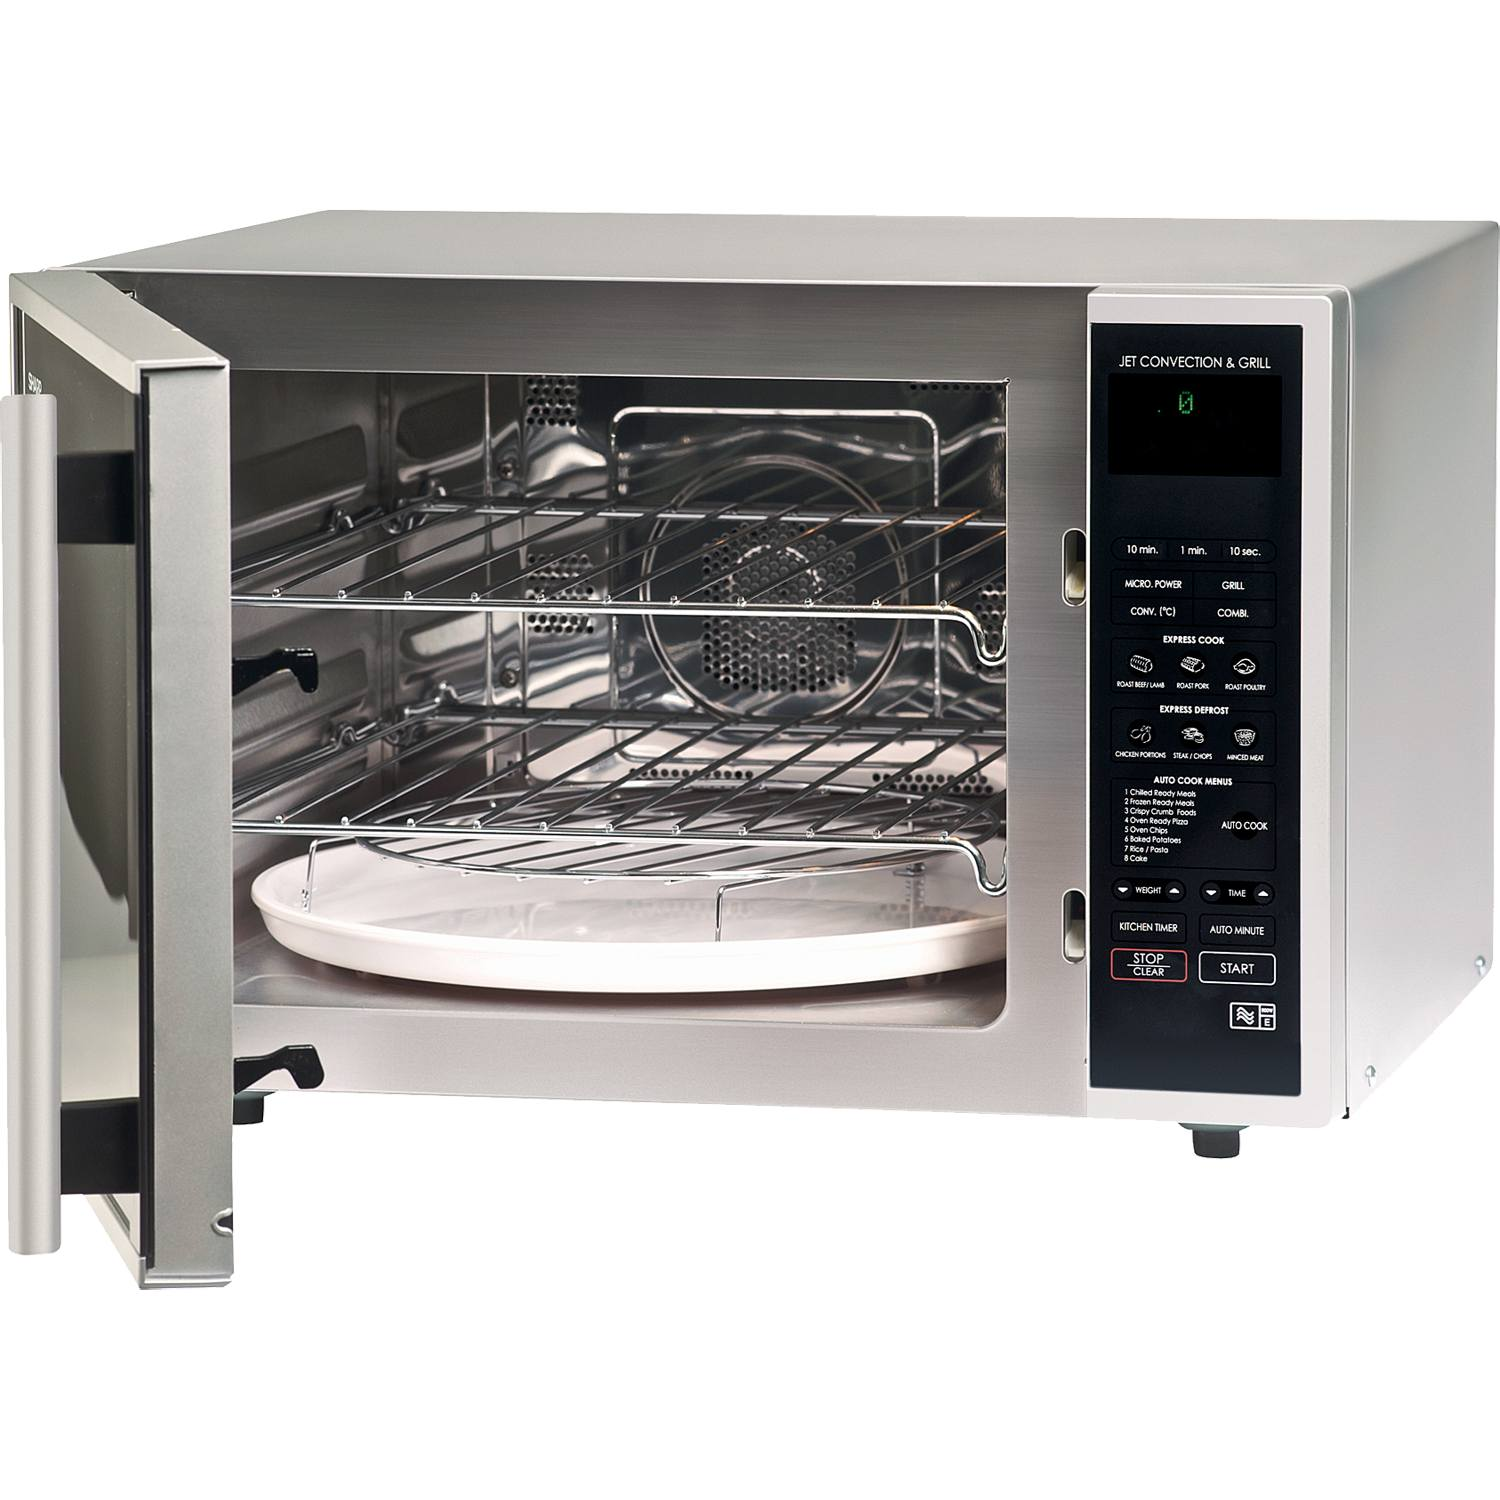 Combination Microwave Oven Sharp Microwave Combination Ovens With Grill Kitchen And Dining Room